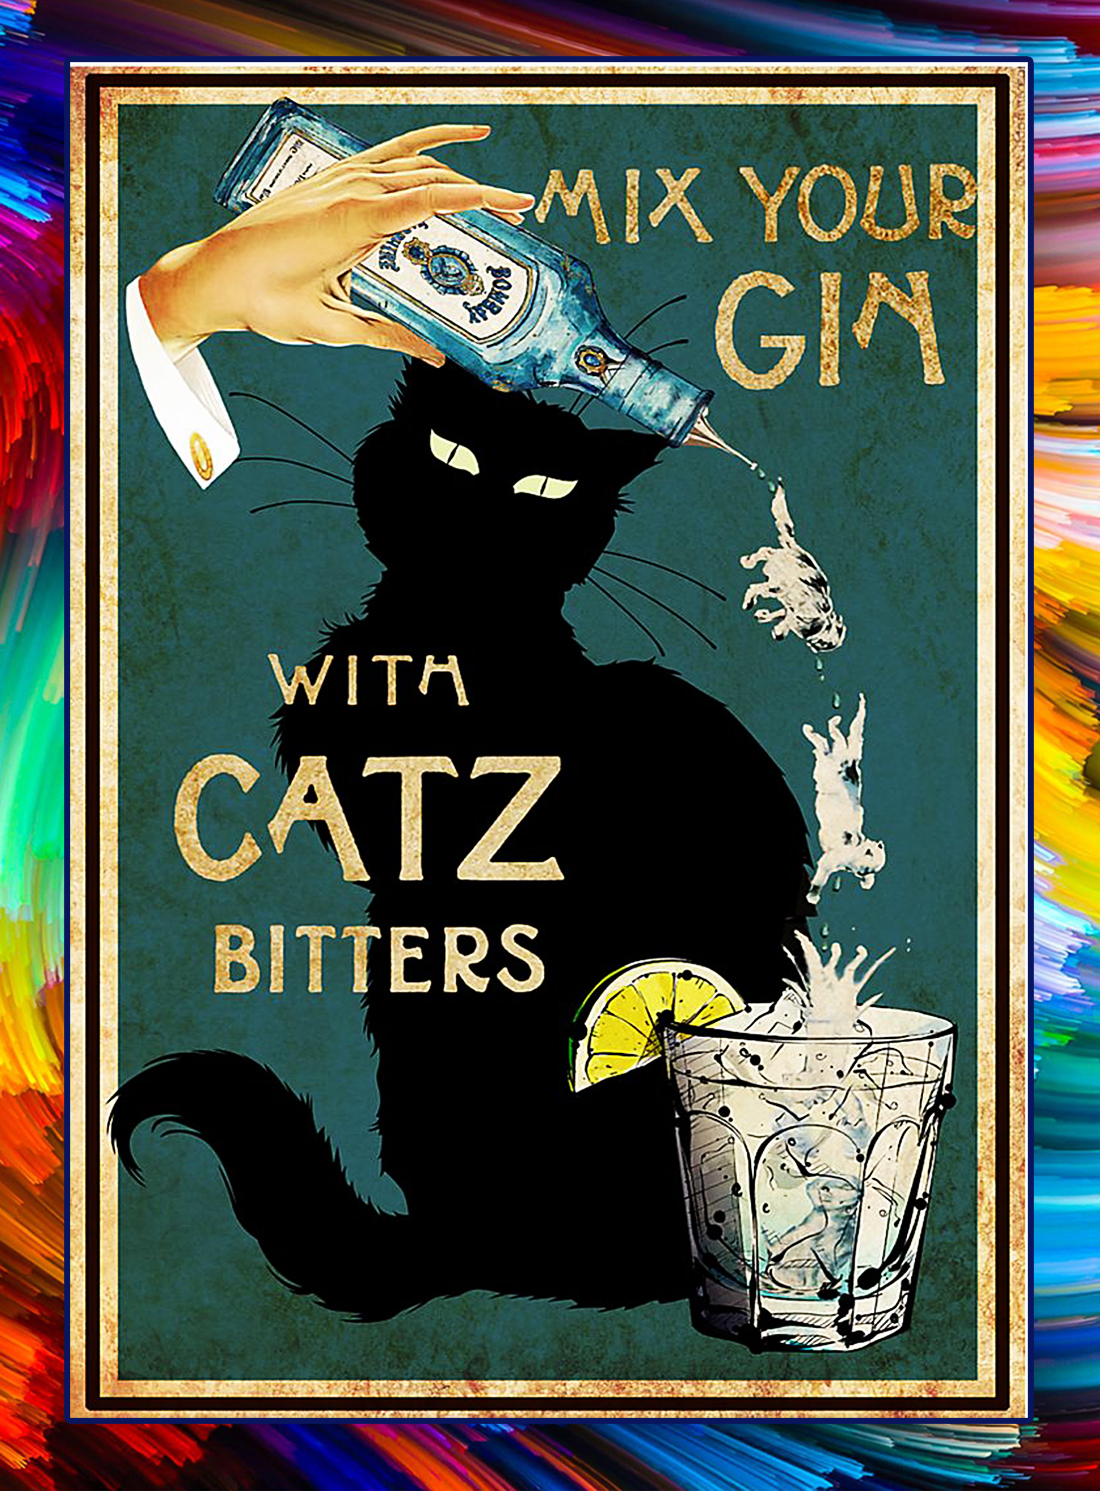 Cat Mix your gin with catz bitter poster - A4